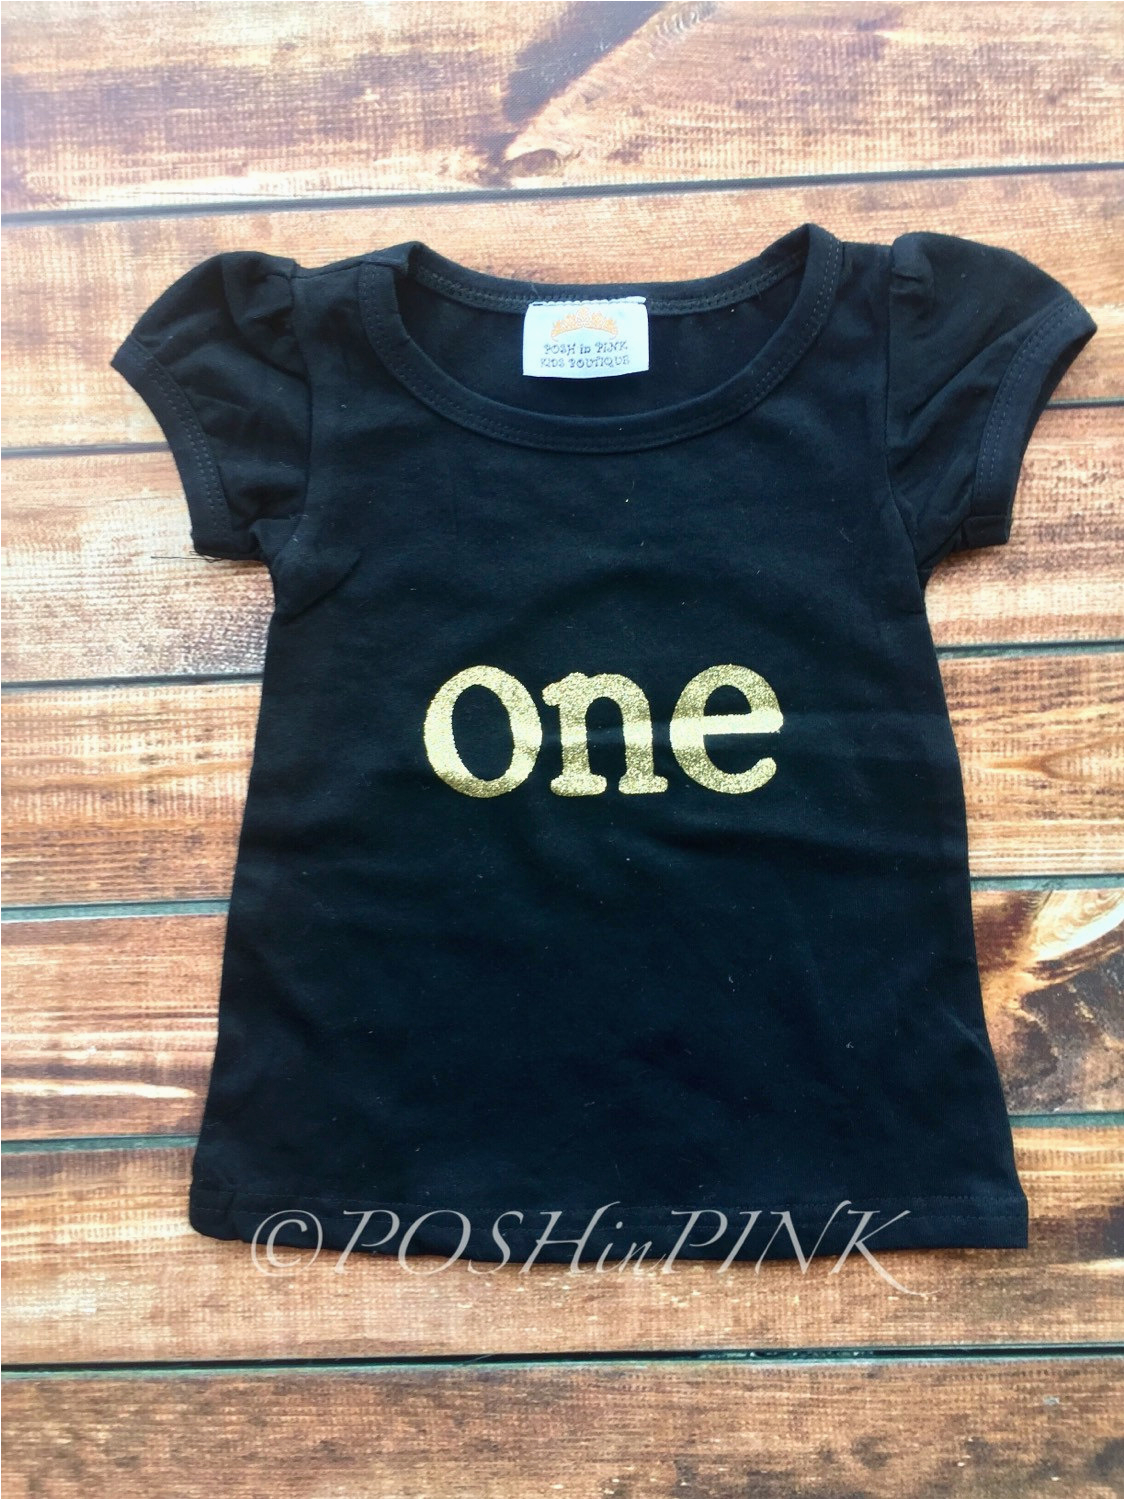 one year old birthday shirt black and